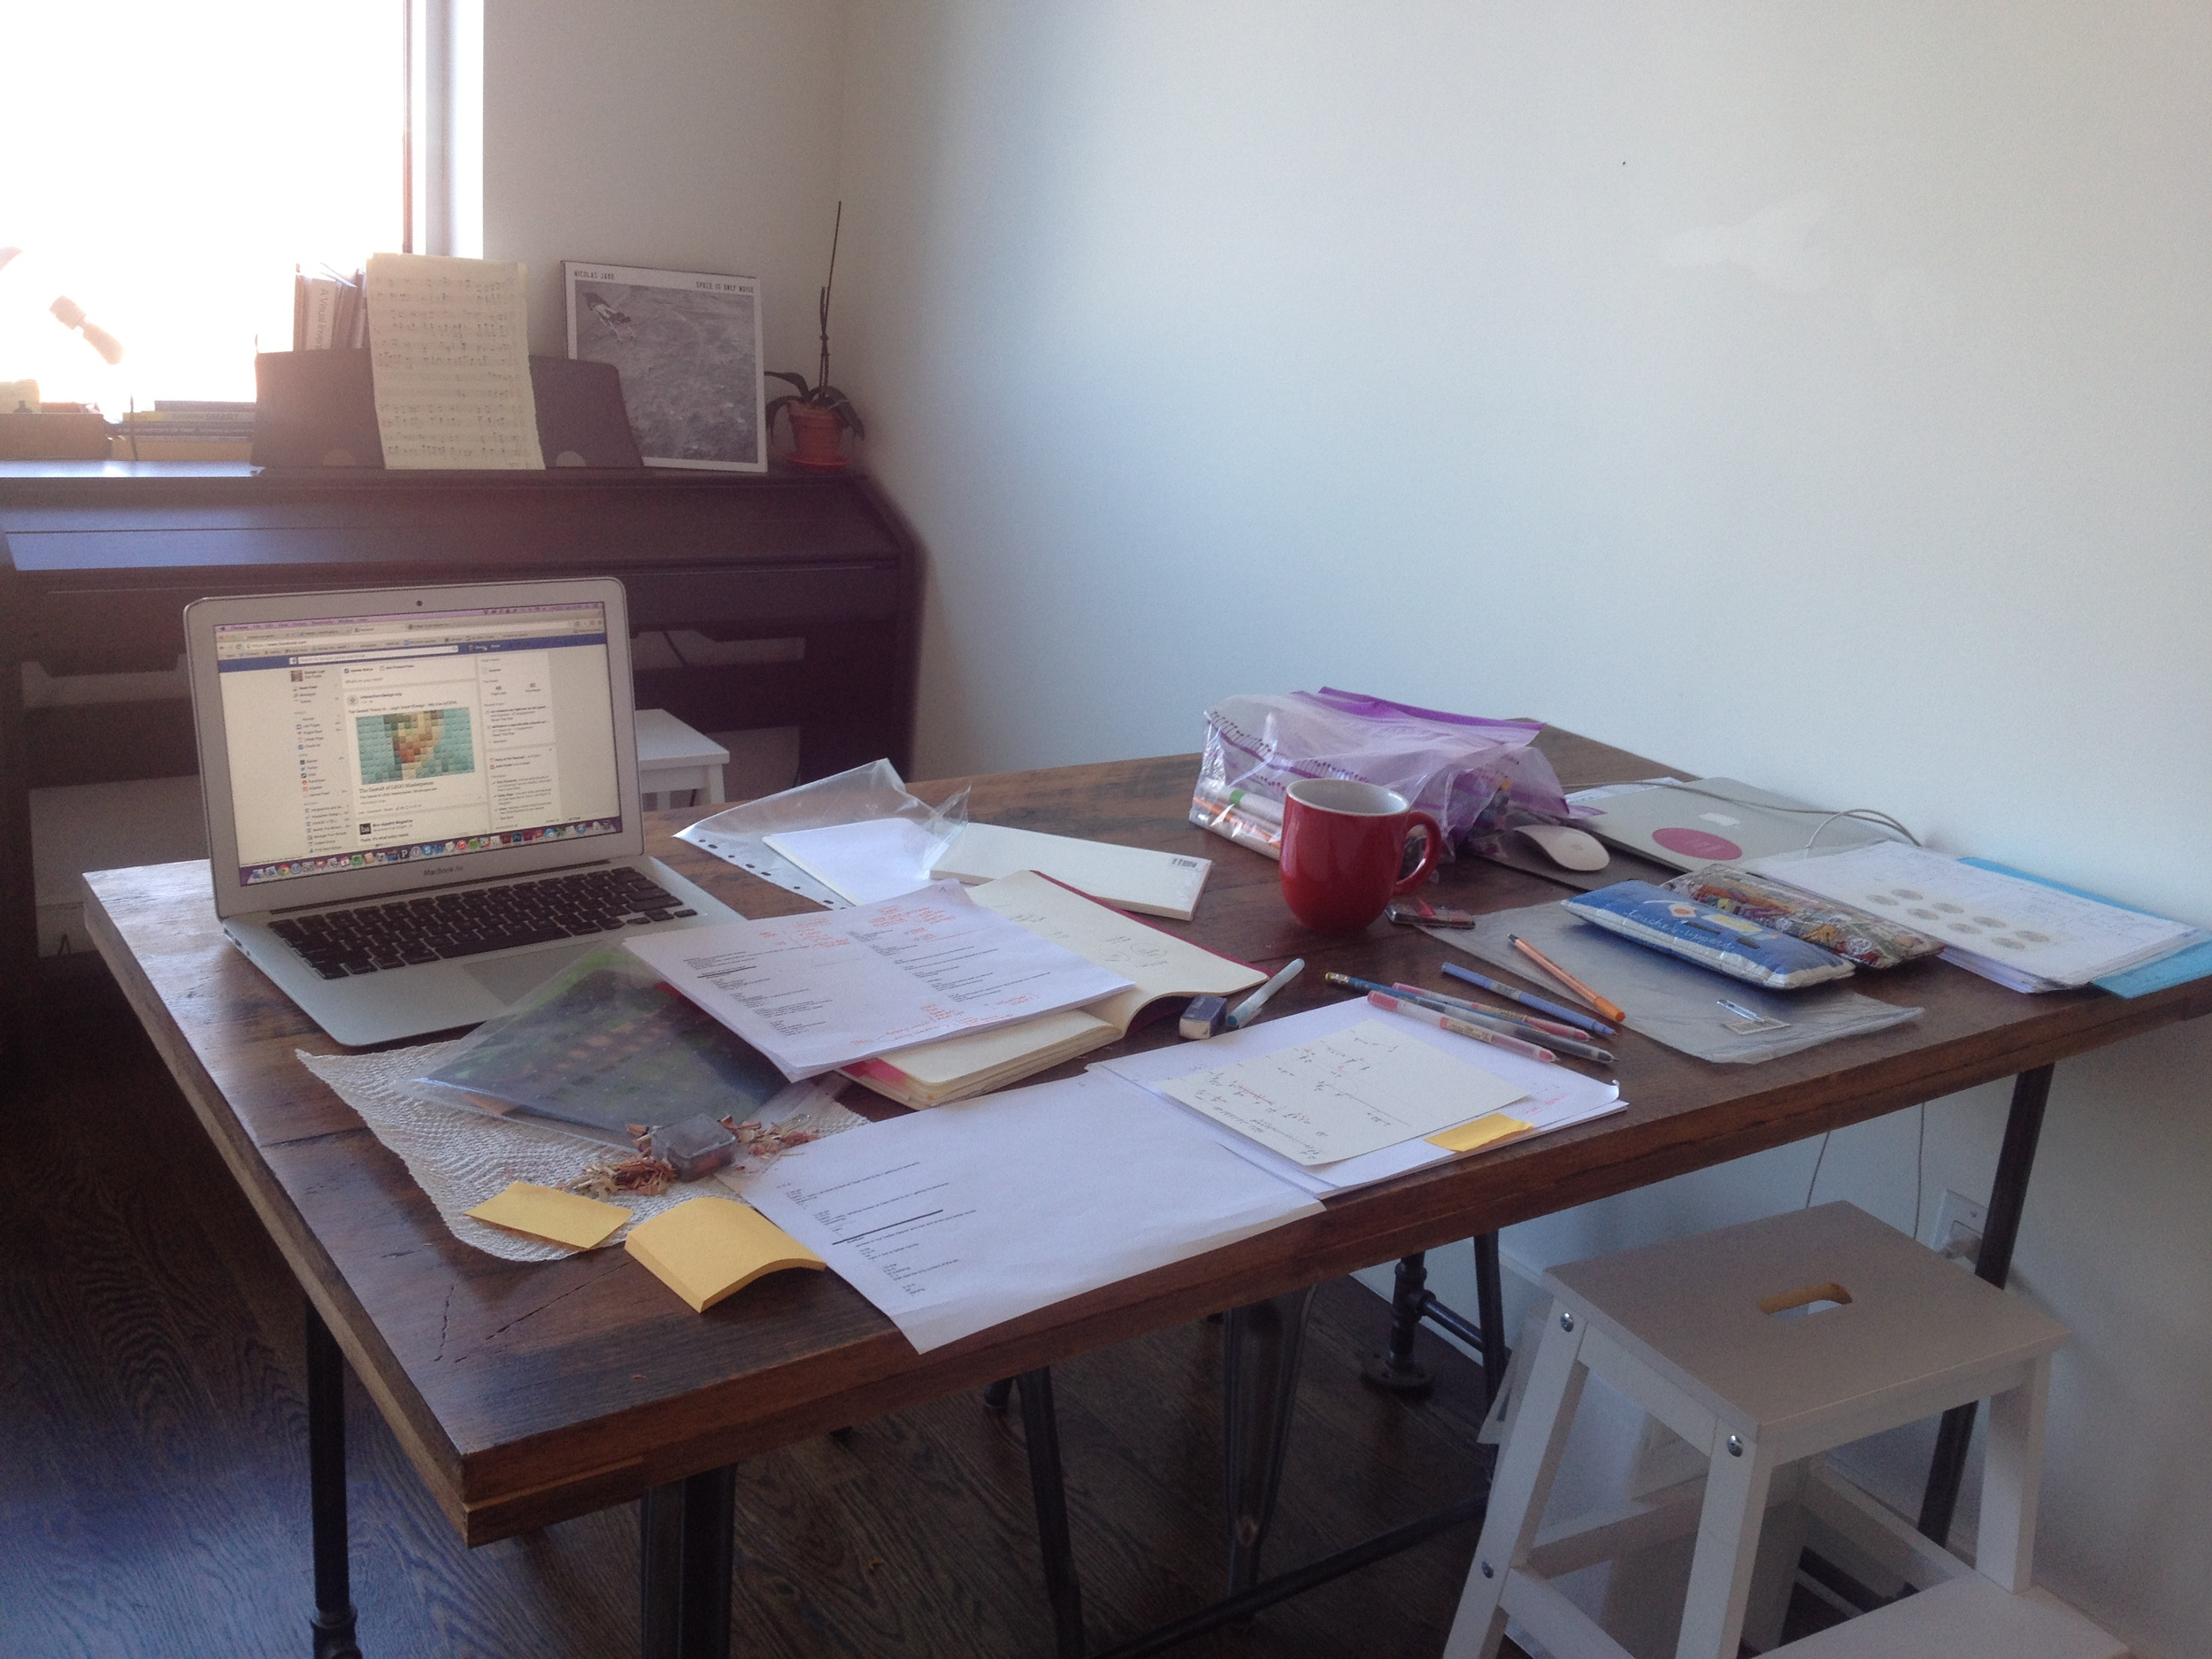 ...what a mess every time! :(